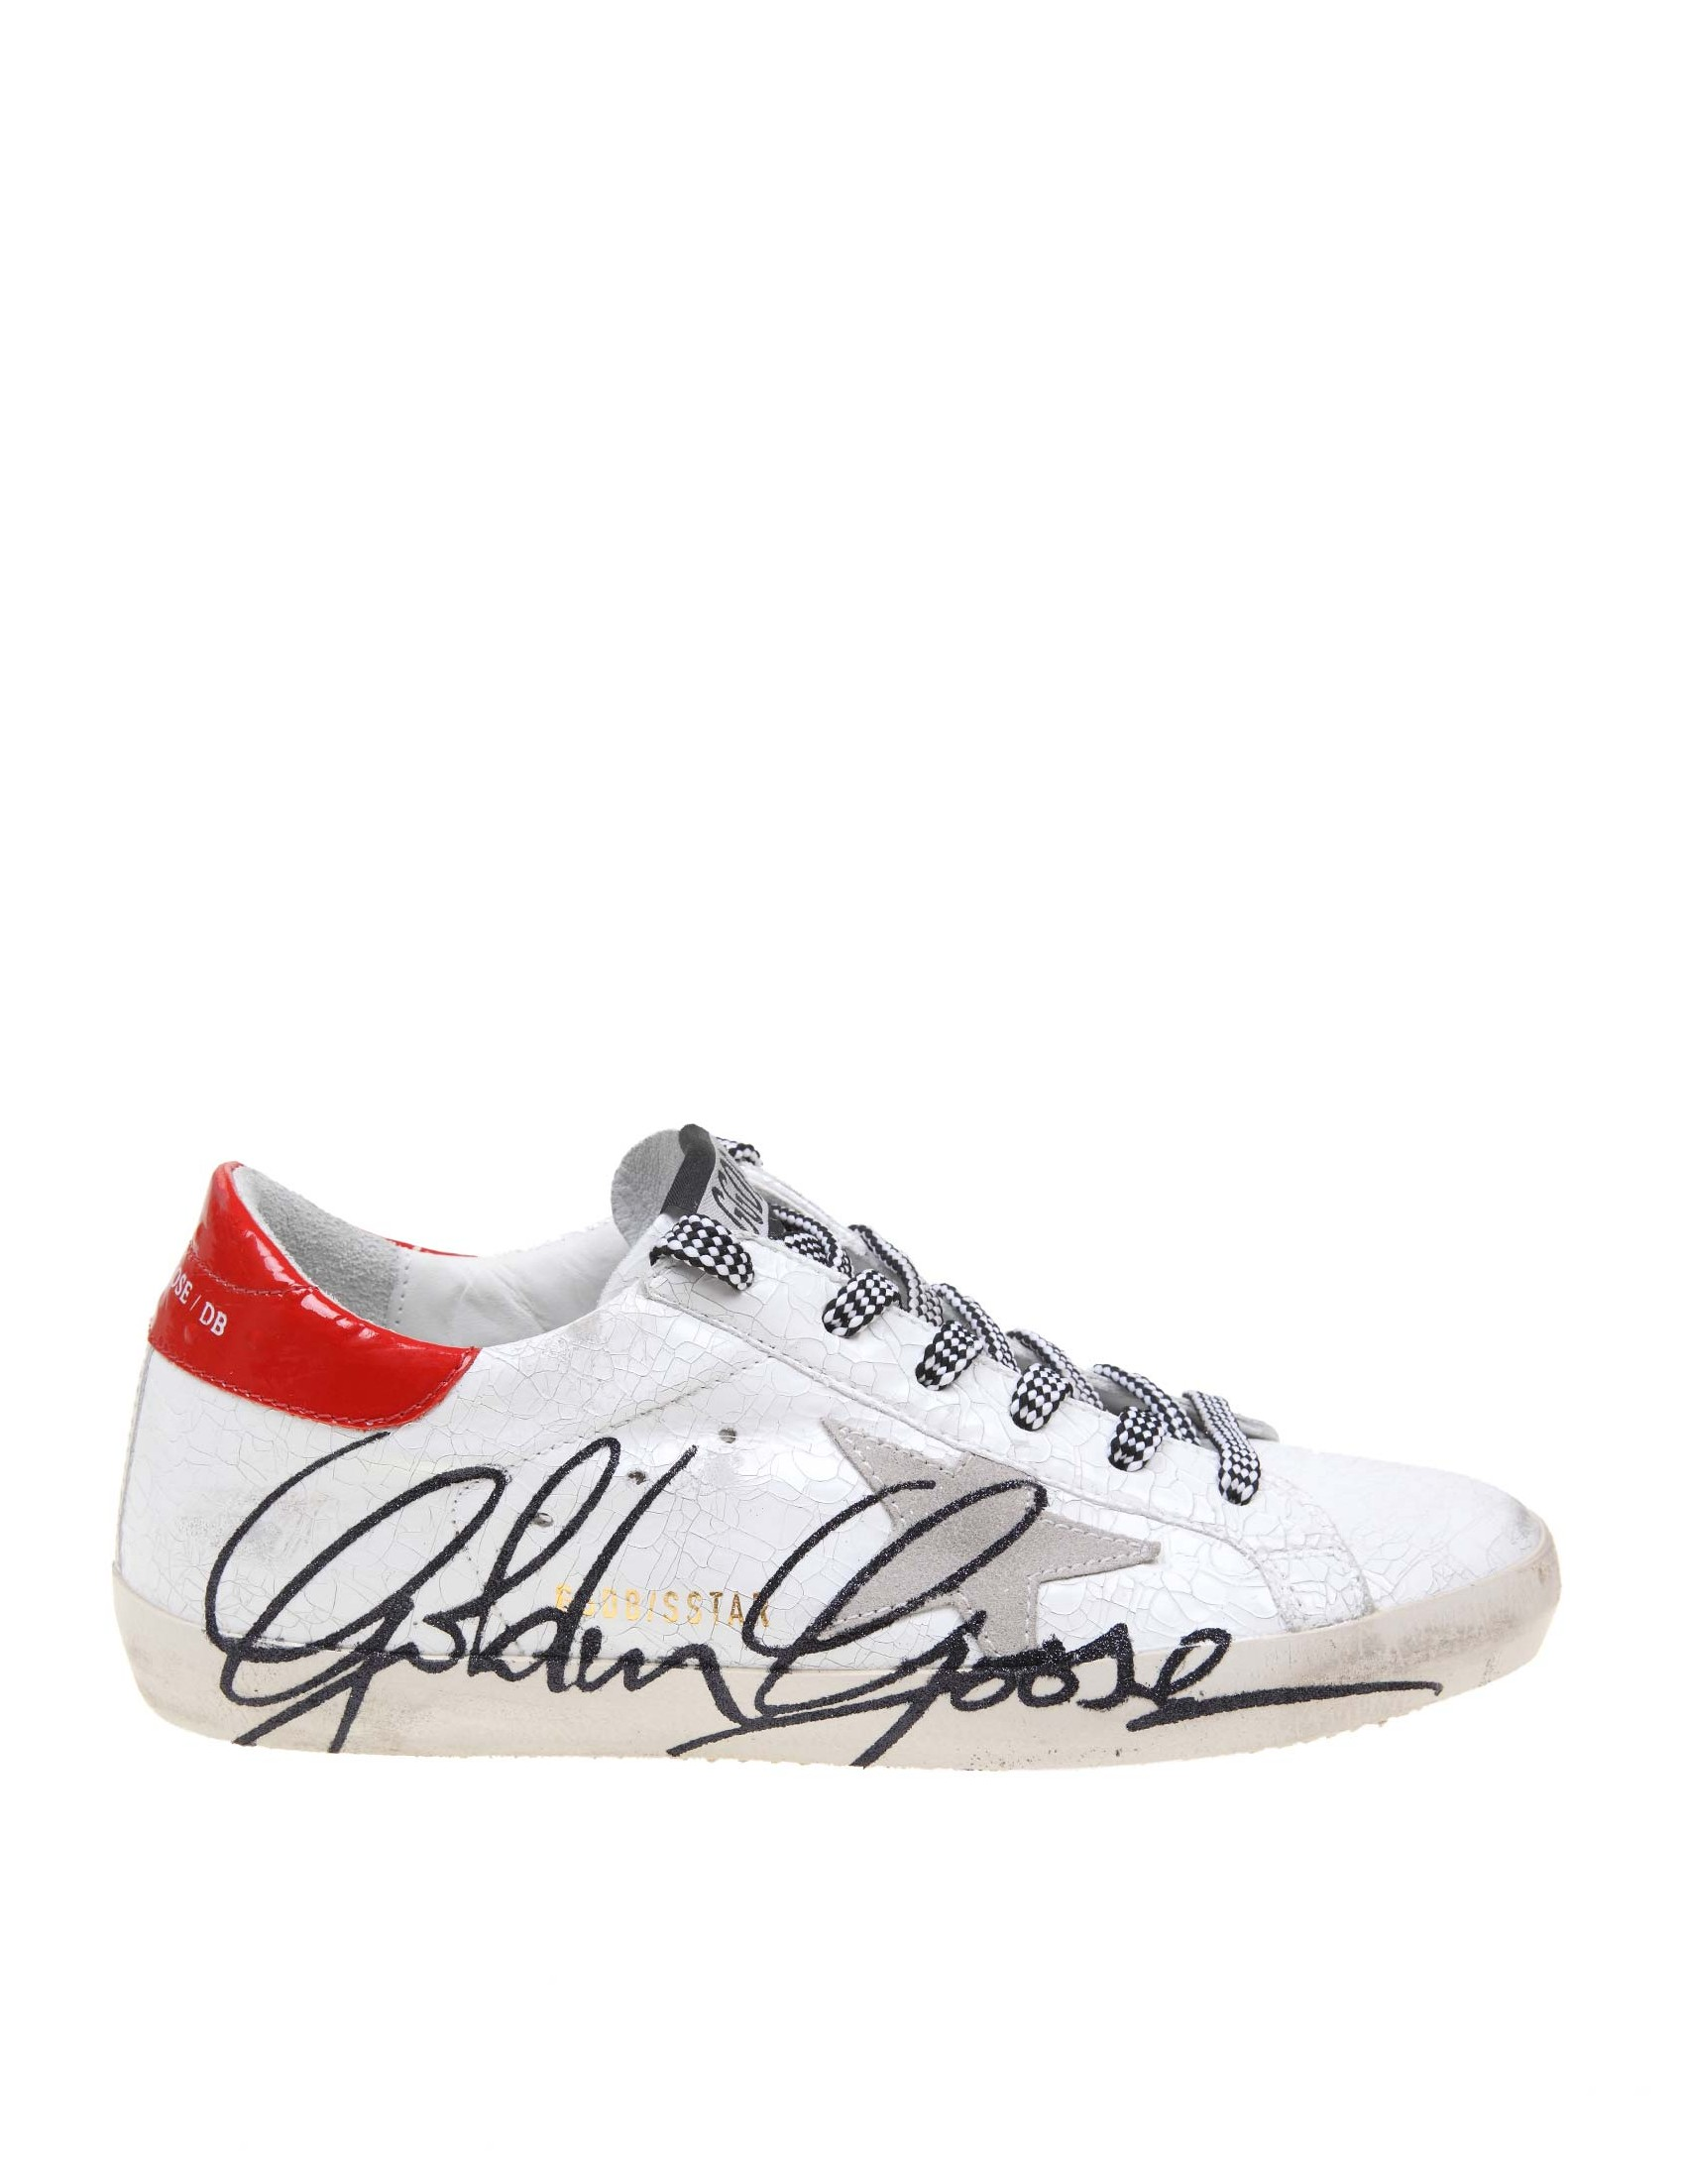 sneakers for cheap b2368 92a7d GOLDEN GOOSE SUPERSTAR SNEAKERS IN BRIGHT COLOR WHITE LEATHER